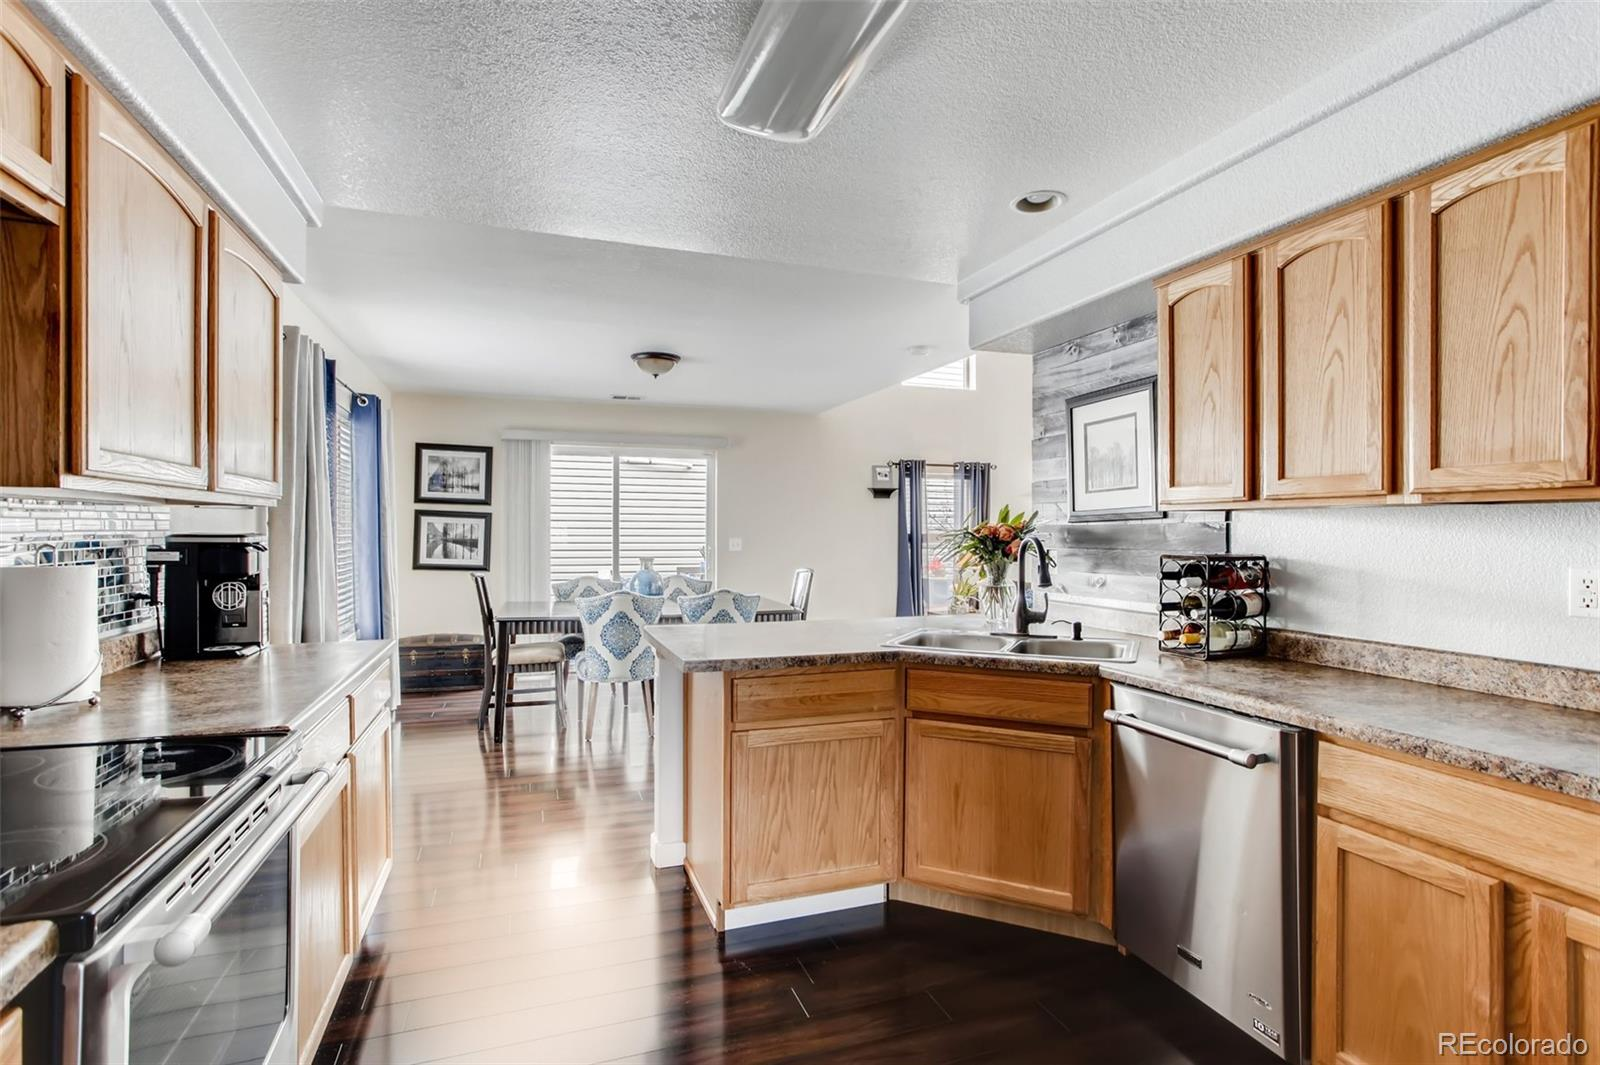 MLS# 3131128 - 11 - 20000 Mitchell Place #64, Denver, CO 80249